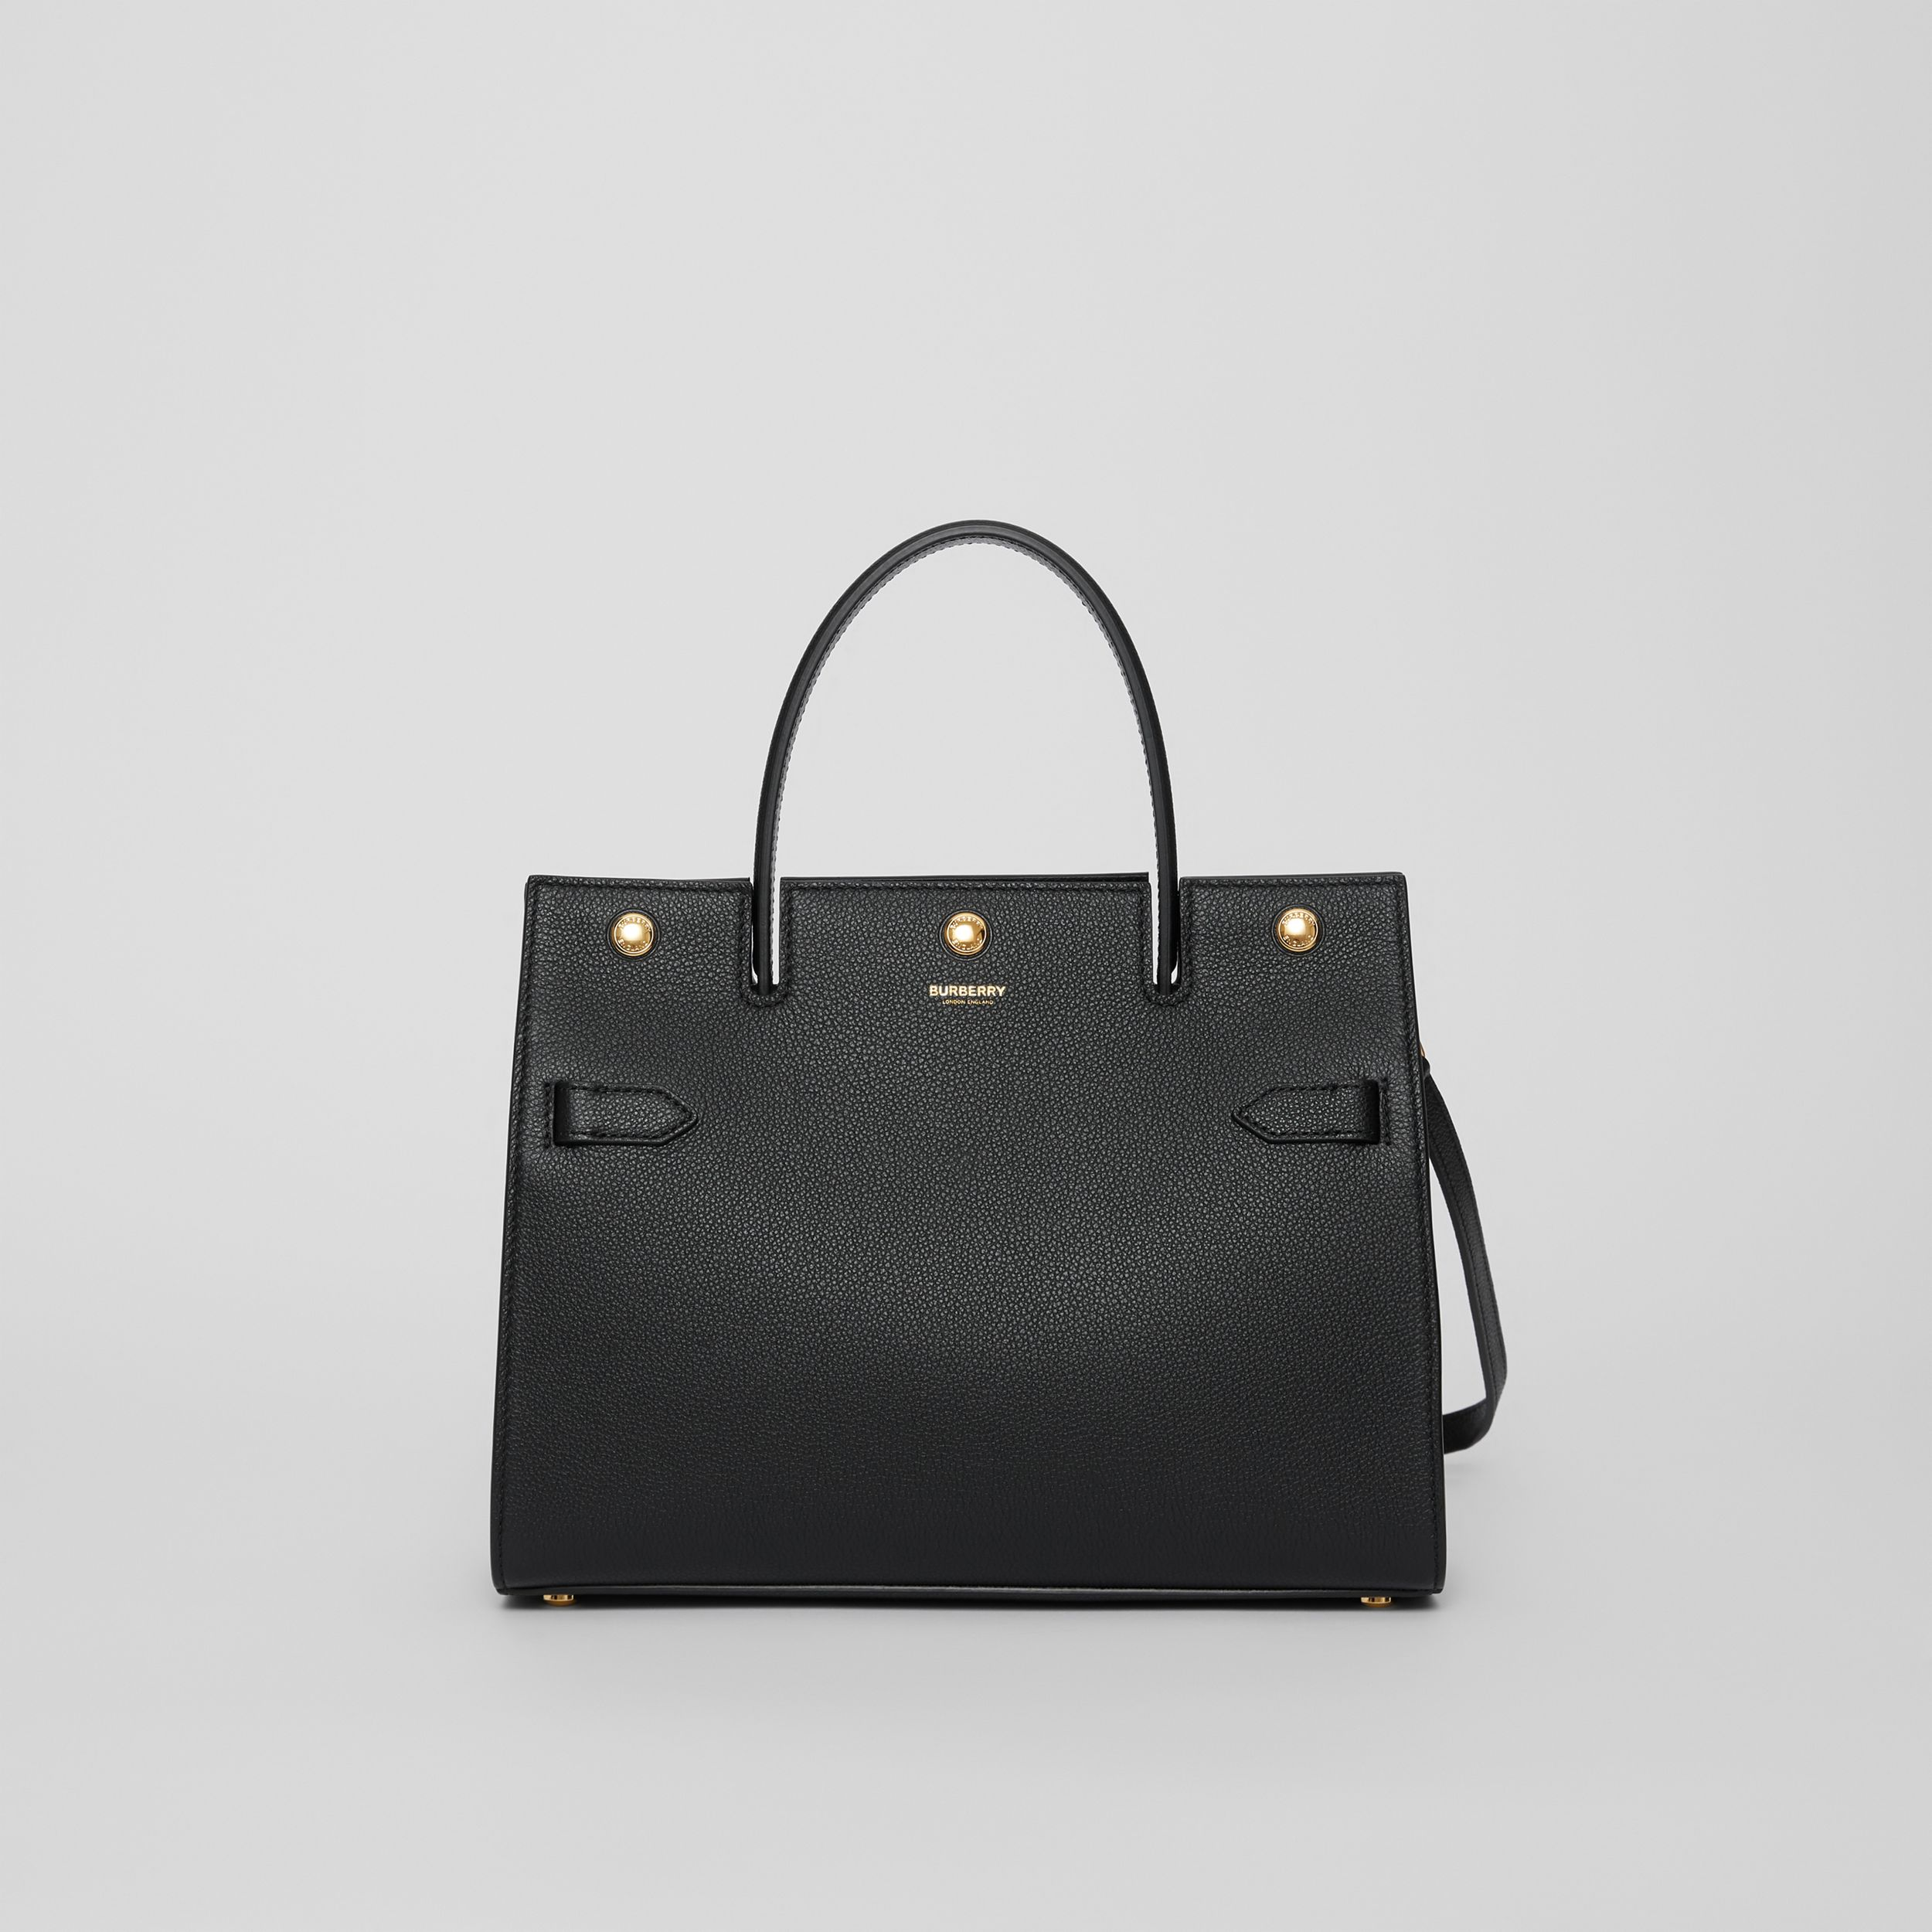 Small Leather Title Bag in Black - Women | Burberry - 1